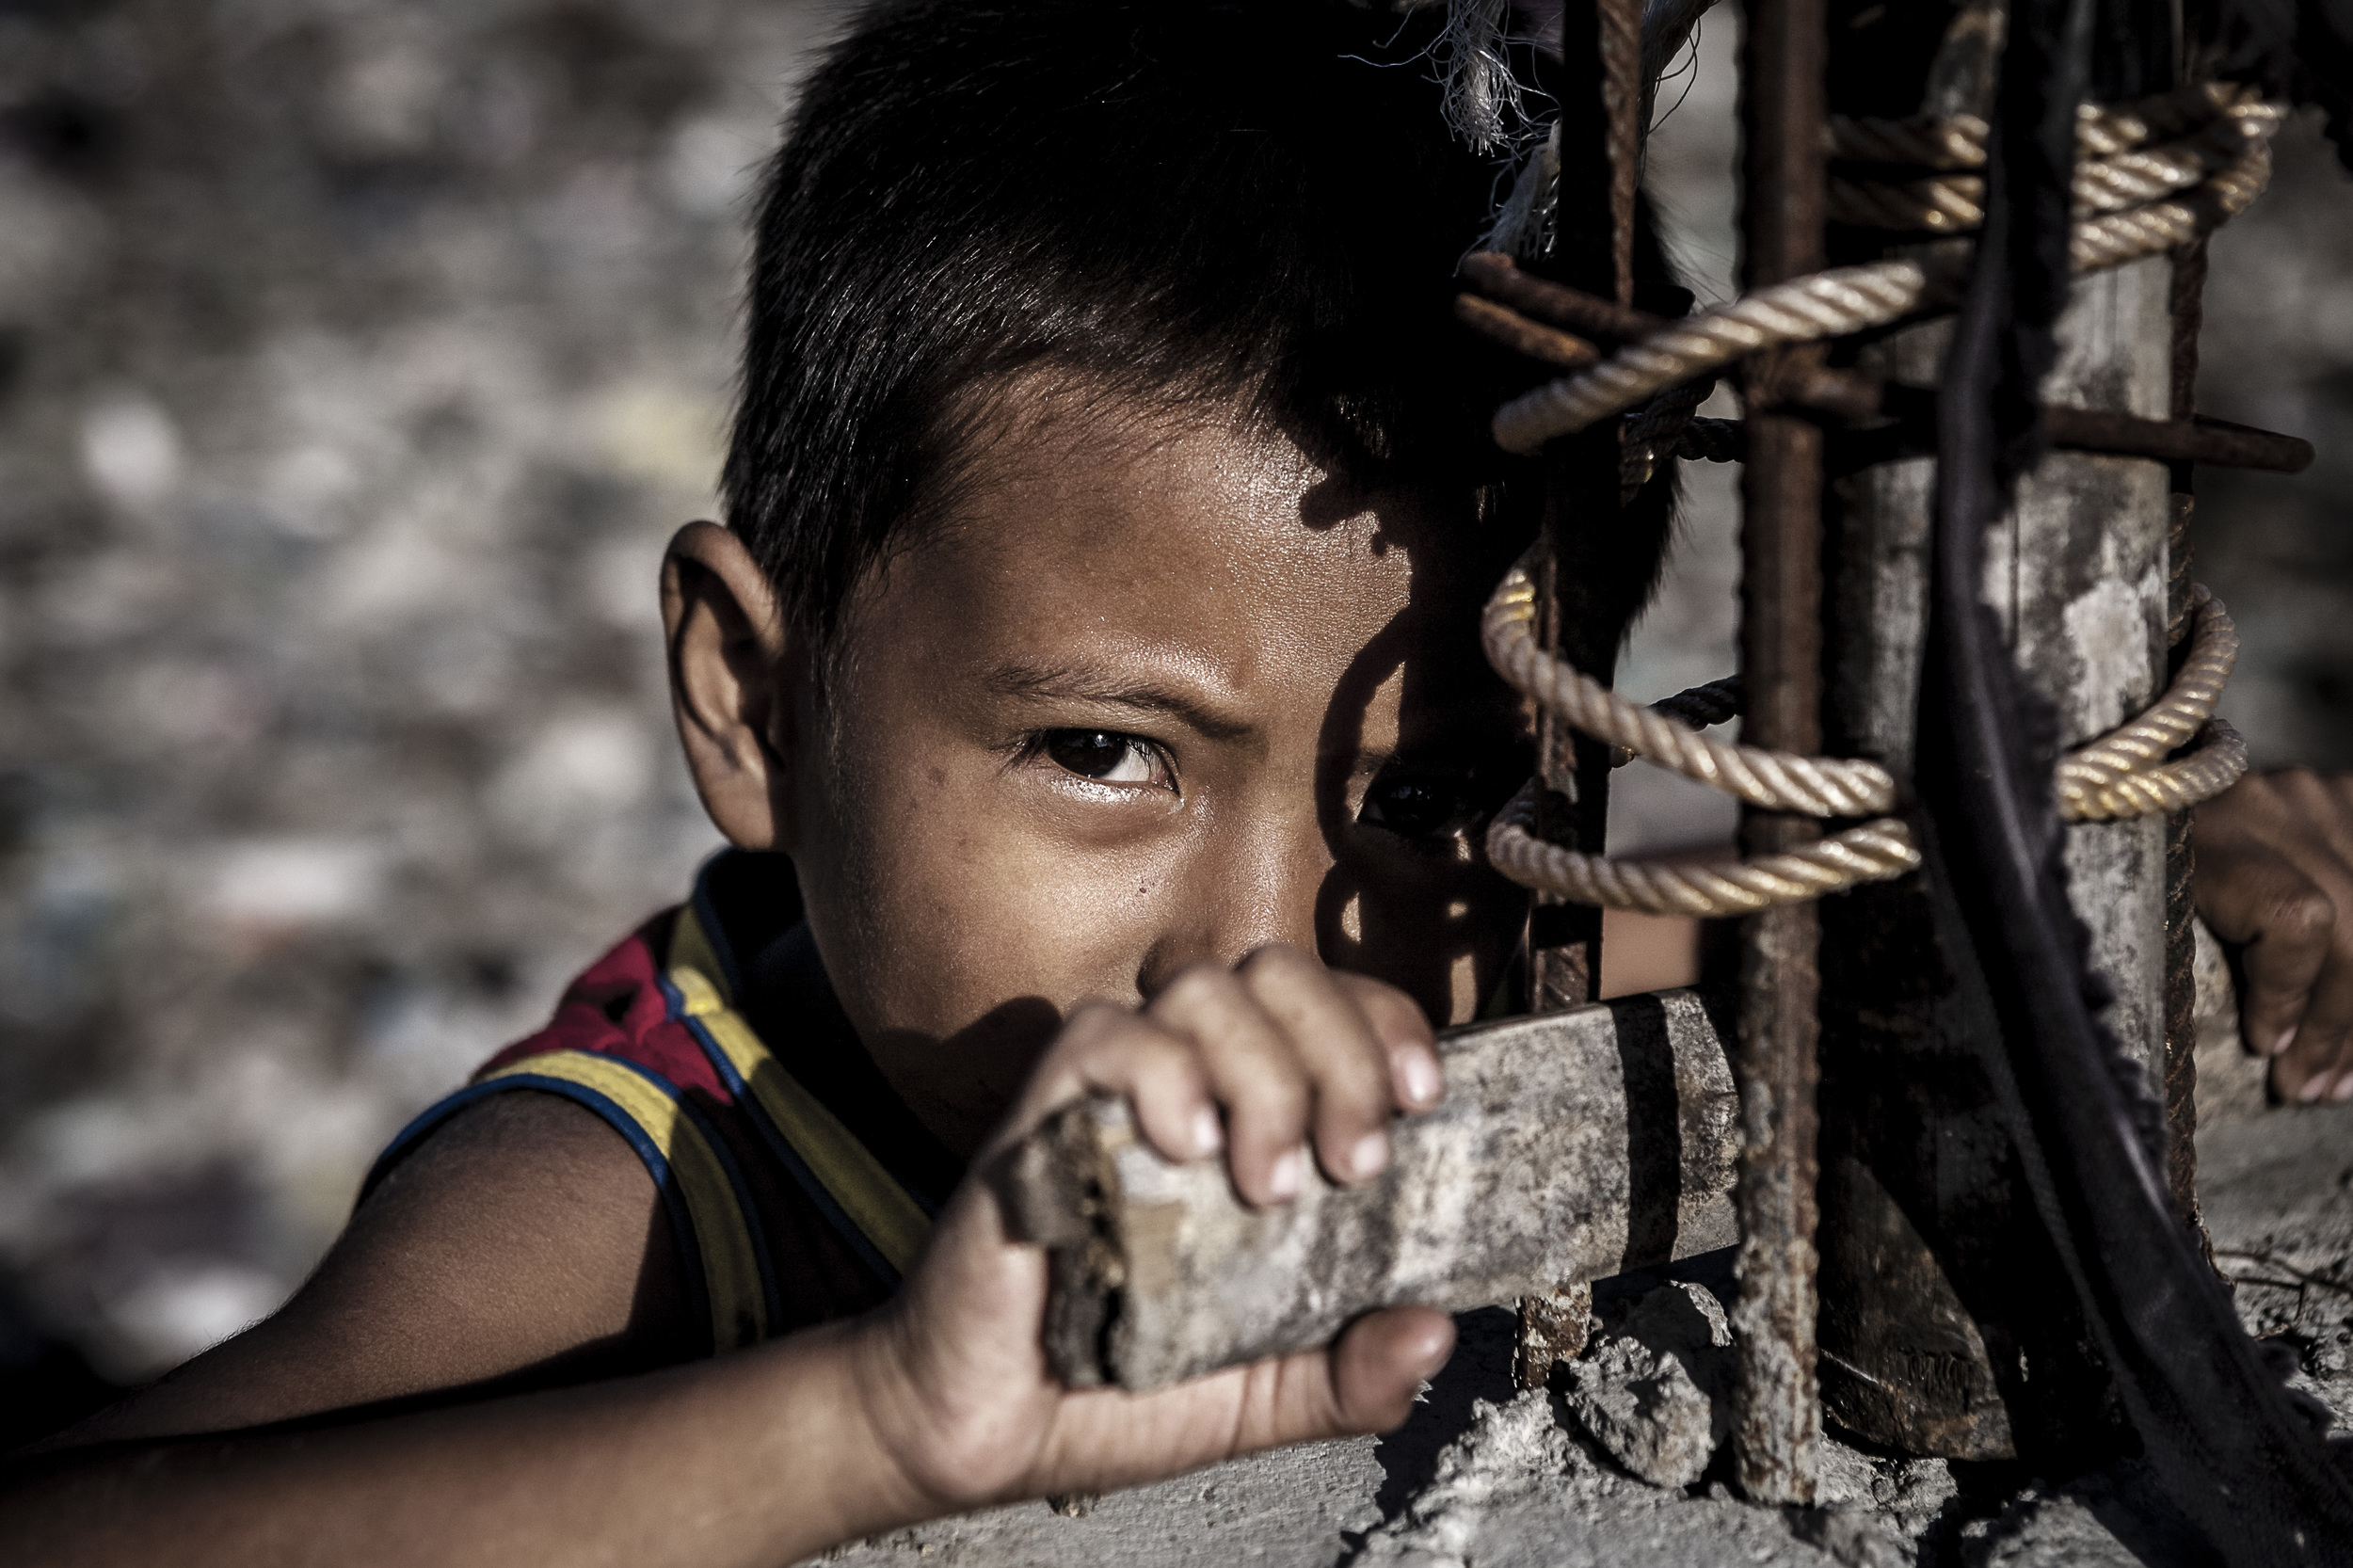 Poverty: small boy living on Sawung tip in Bali Indonesia. He ran away before I could ask his name.